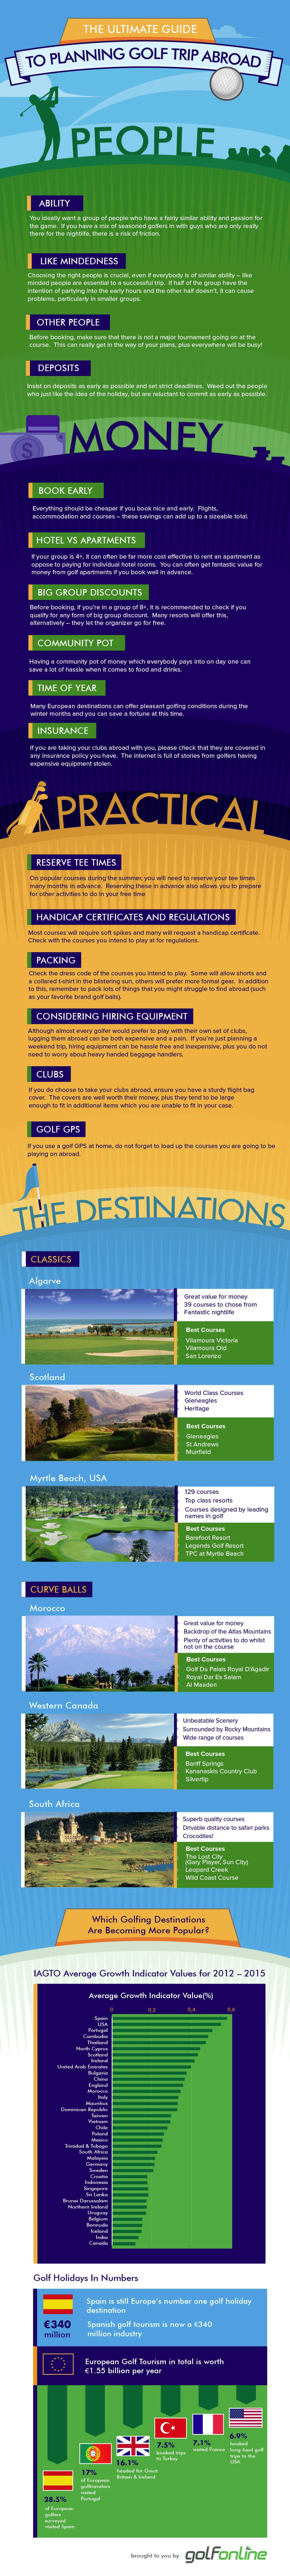 Tee Times Golf Holidays - Guide To Planning a Golf Trip Abroad